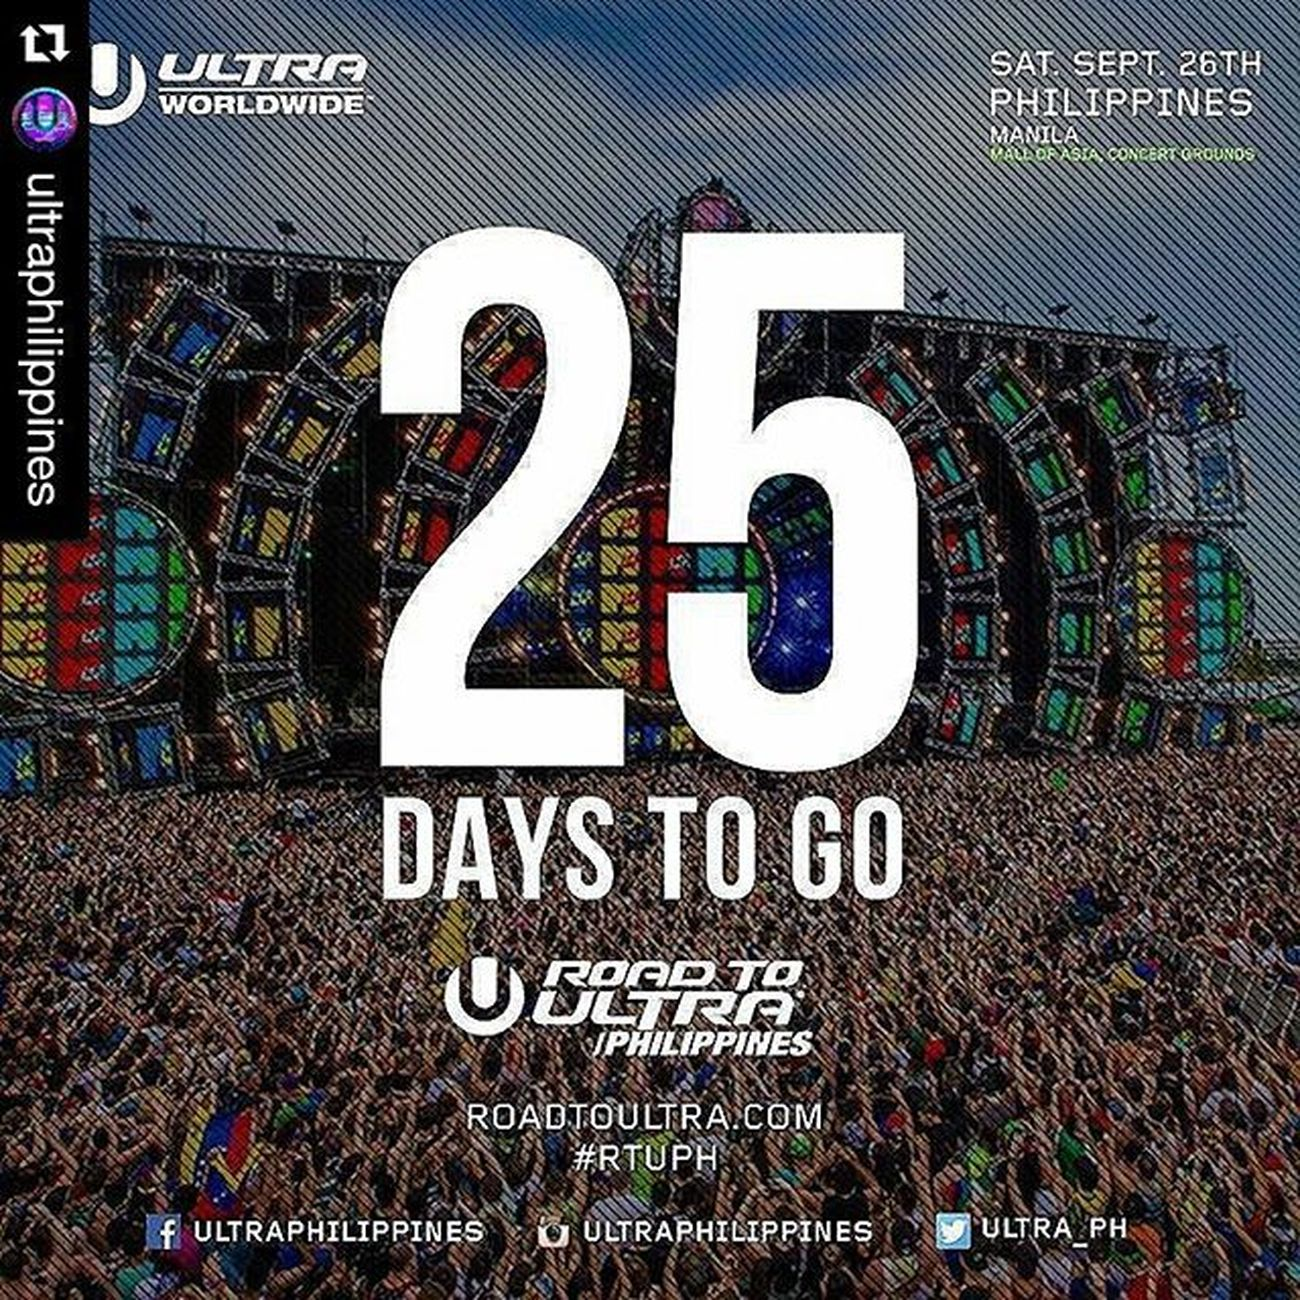 Roadtoultraph Roadtoultraphilippines2015 RTUPH UltraPhilippines Repost @ultraphilippines with @repostapp ・・・ And so the countdown begins! 25 days to go until Road to Ultra Philippines at Mall of Asia Concert Grounds. Get your tickets now! For table reservation or other inquires contact 09175529556 RTUPH Skrillex  Feddelegrand Wegogrand WandW Atrak Vicetone Mija Zedsdead